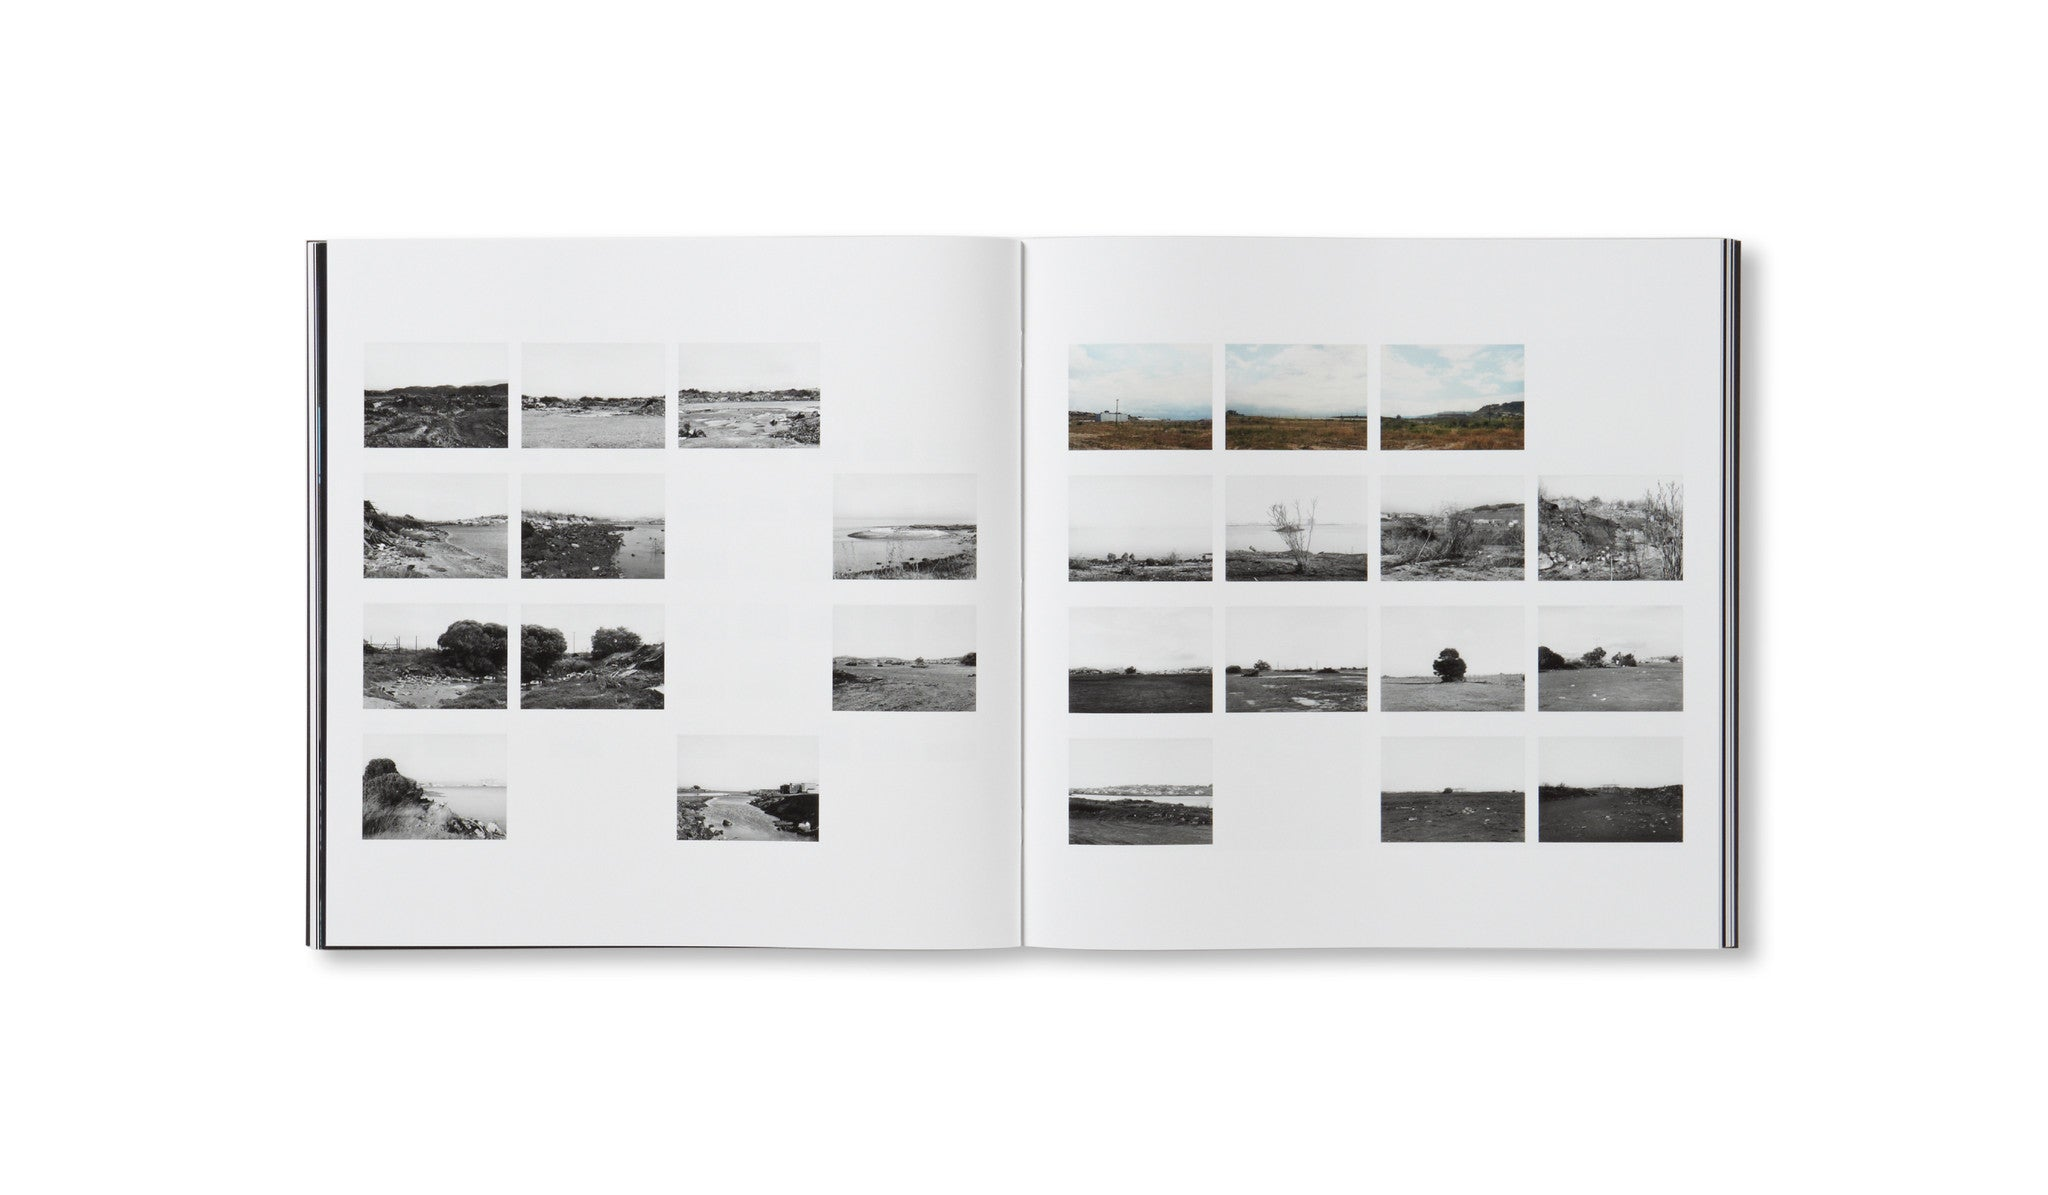 COMMON OBJECTS by Lewis Baltz [SALE]